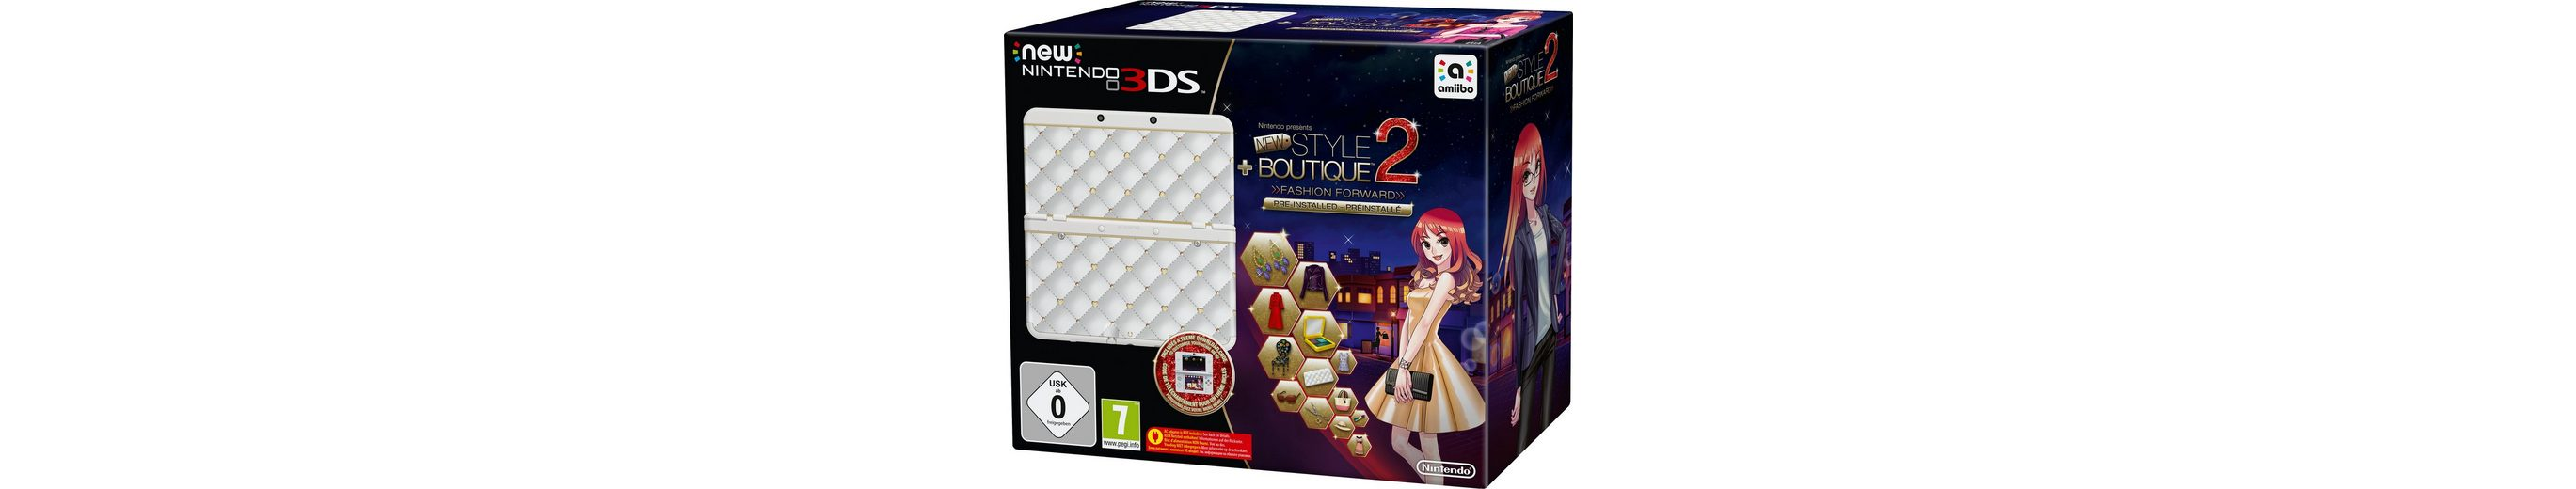 New Nintendo 3DS + New Style Boutique 2